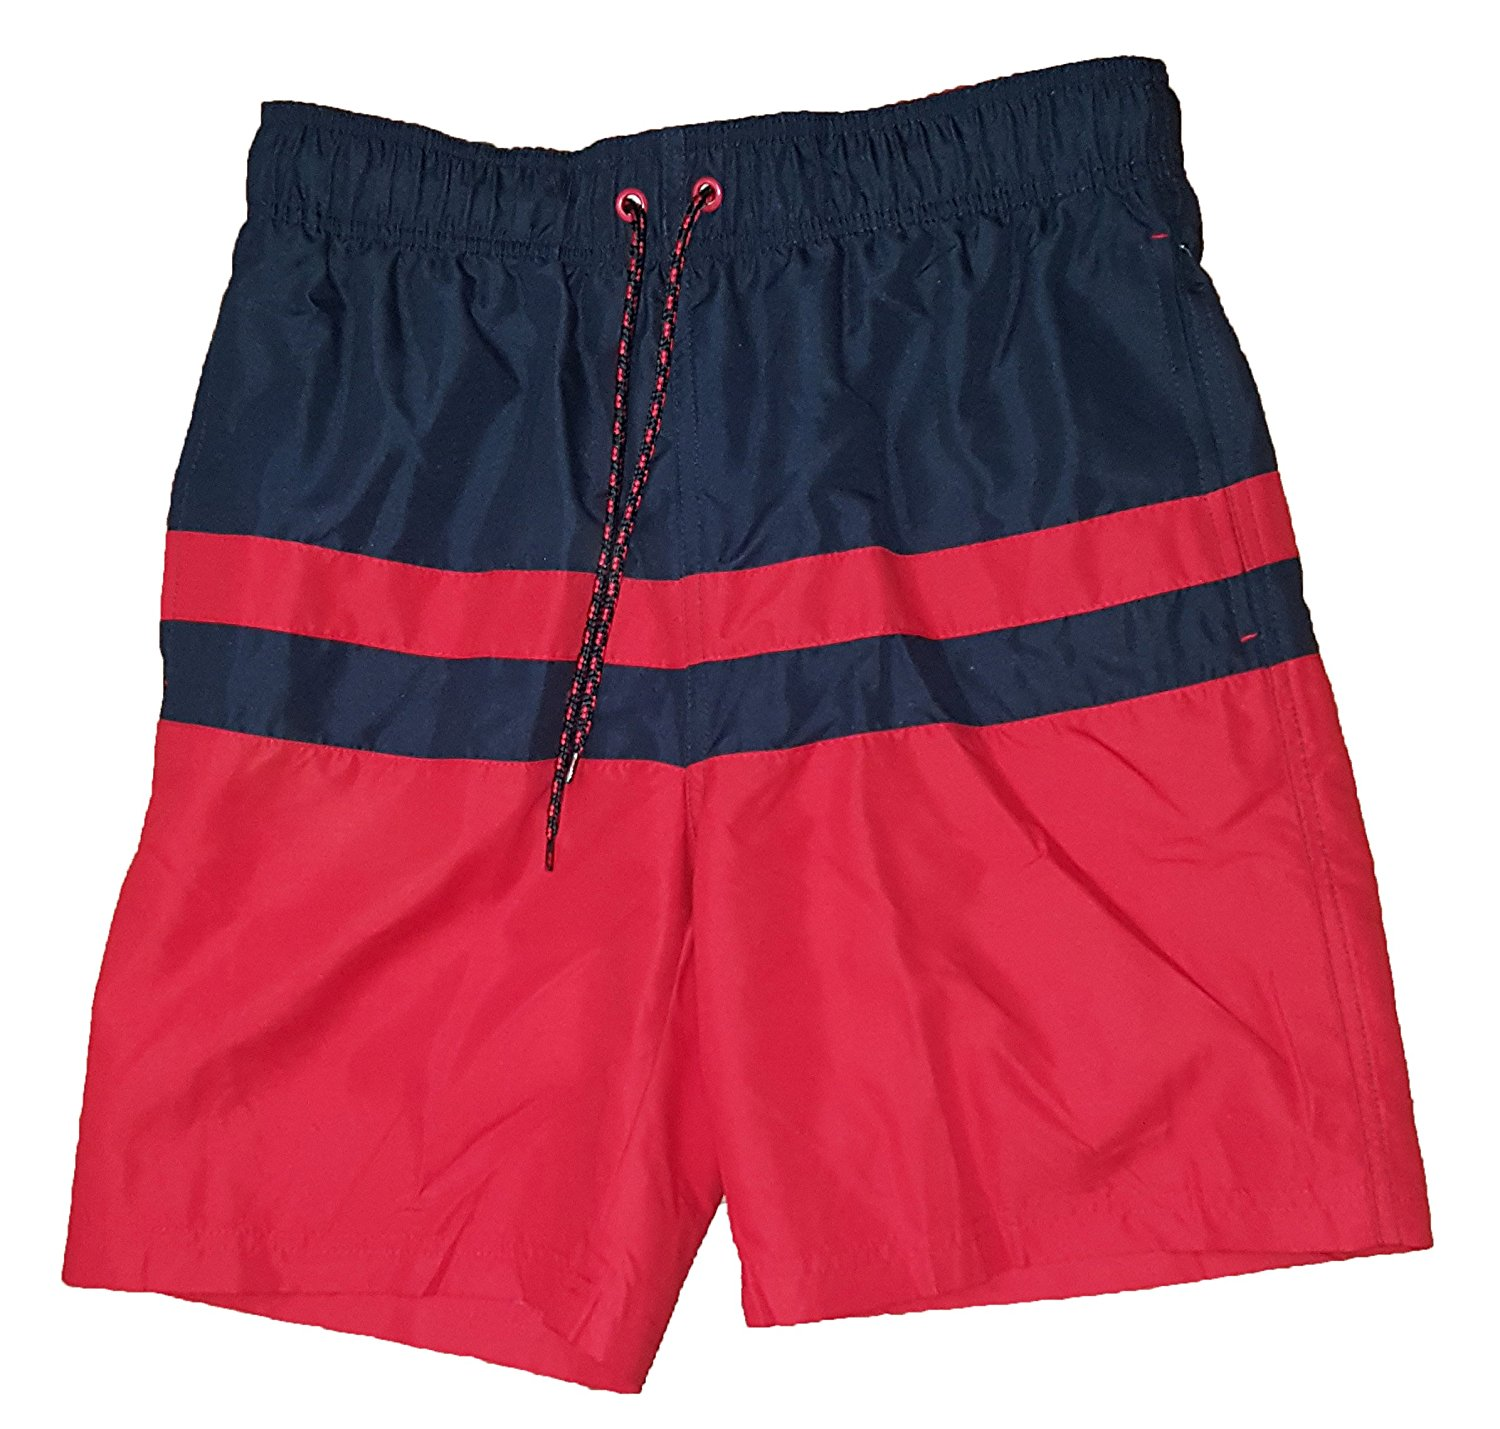 1bf3e81c36 Get Quotations · All Guy Color Block Navy & Red Above The Knee 8